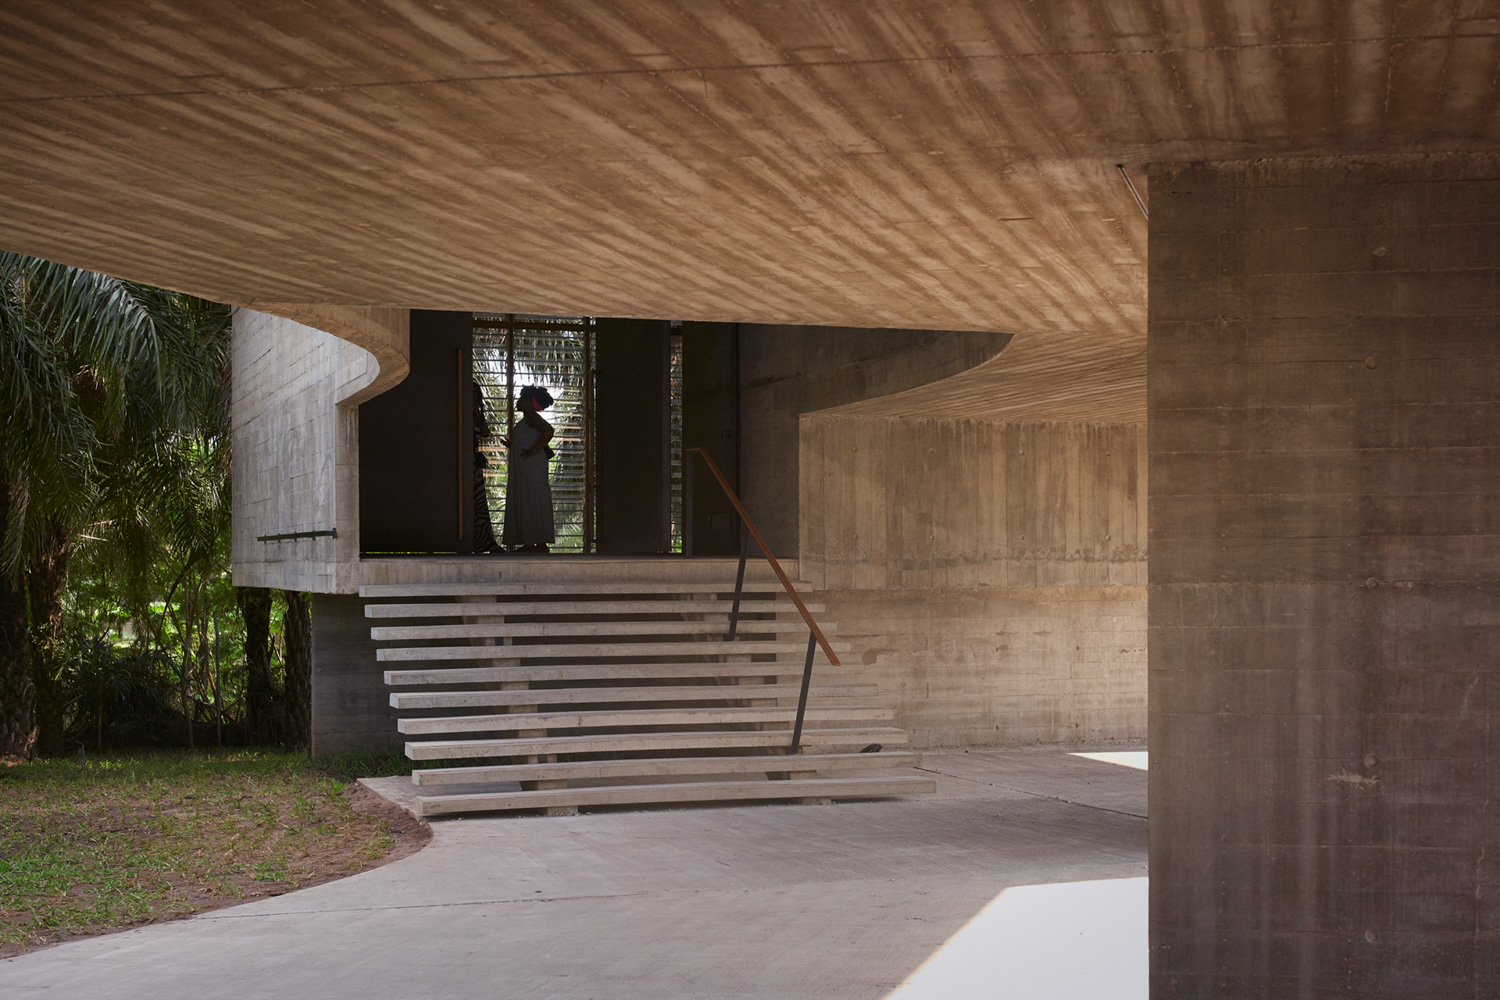 The new gallery is accessed from below via steps leading into a split-level exhibition space Julien Lanoo